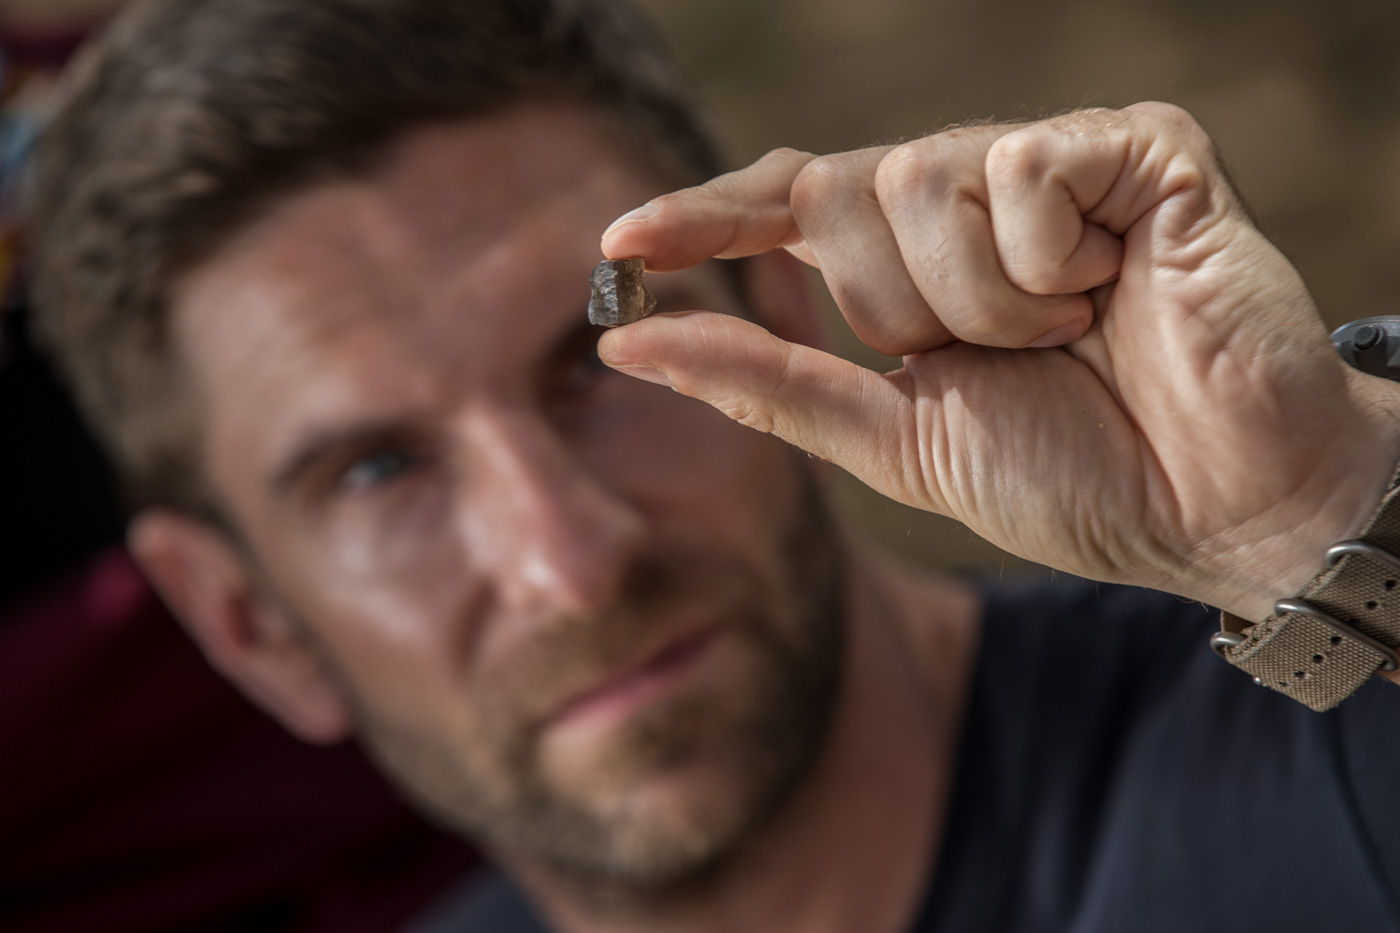 Iver Rosenkrantz, Gemologist, looking at a stone at a mine during an experience organised by Baum communications